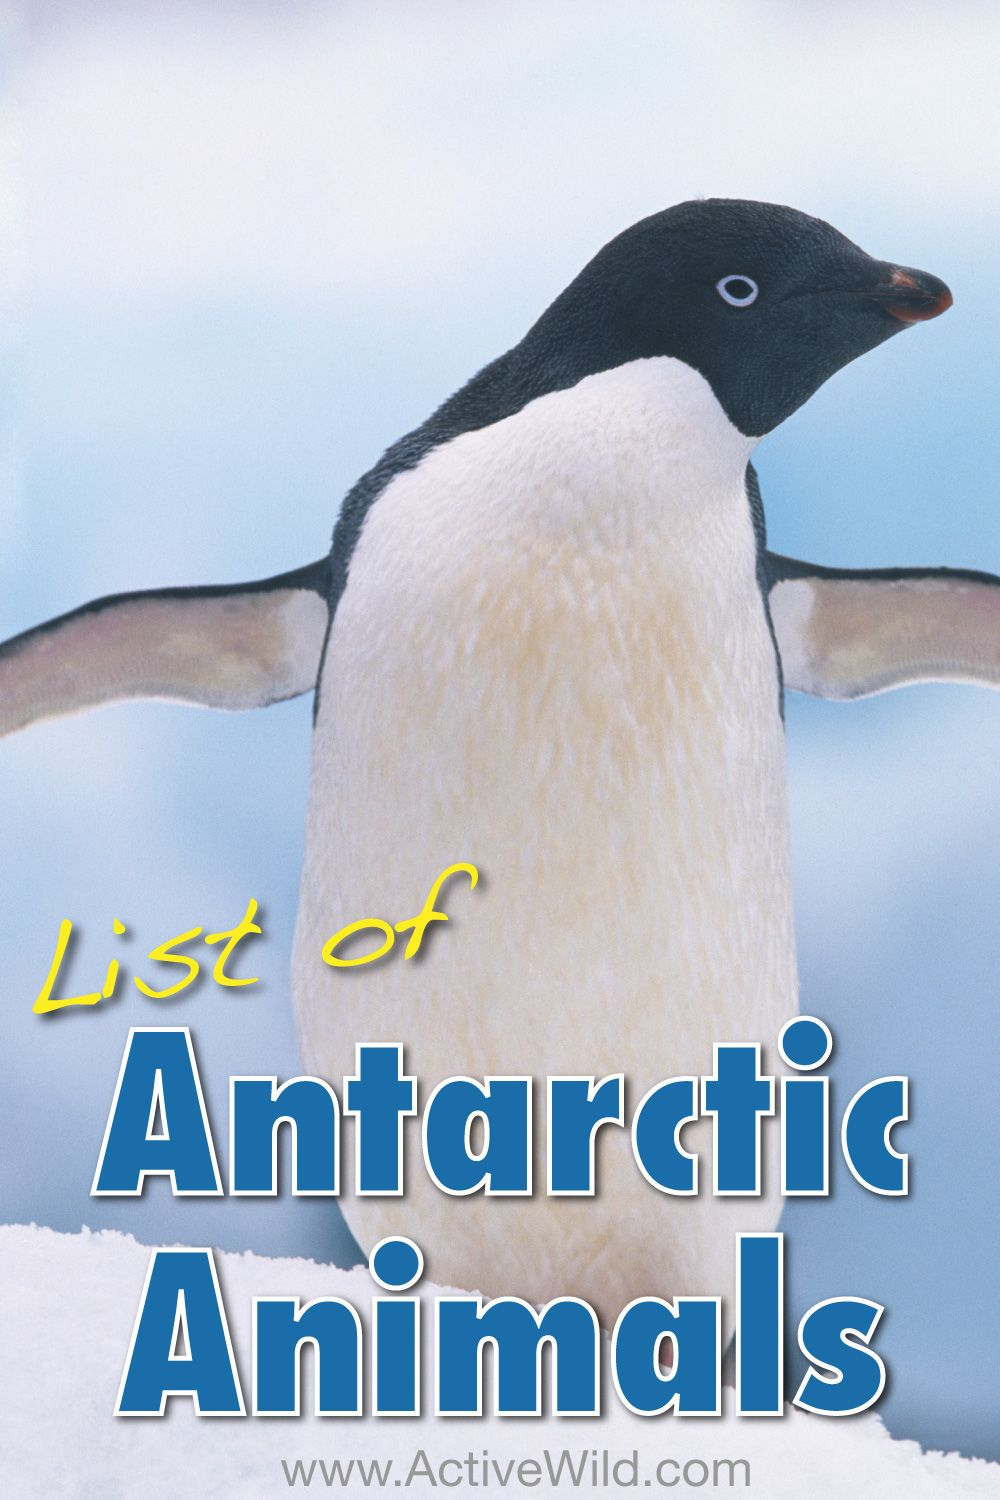 Antarctic Animals List With Pictures, Facts & Information